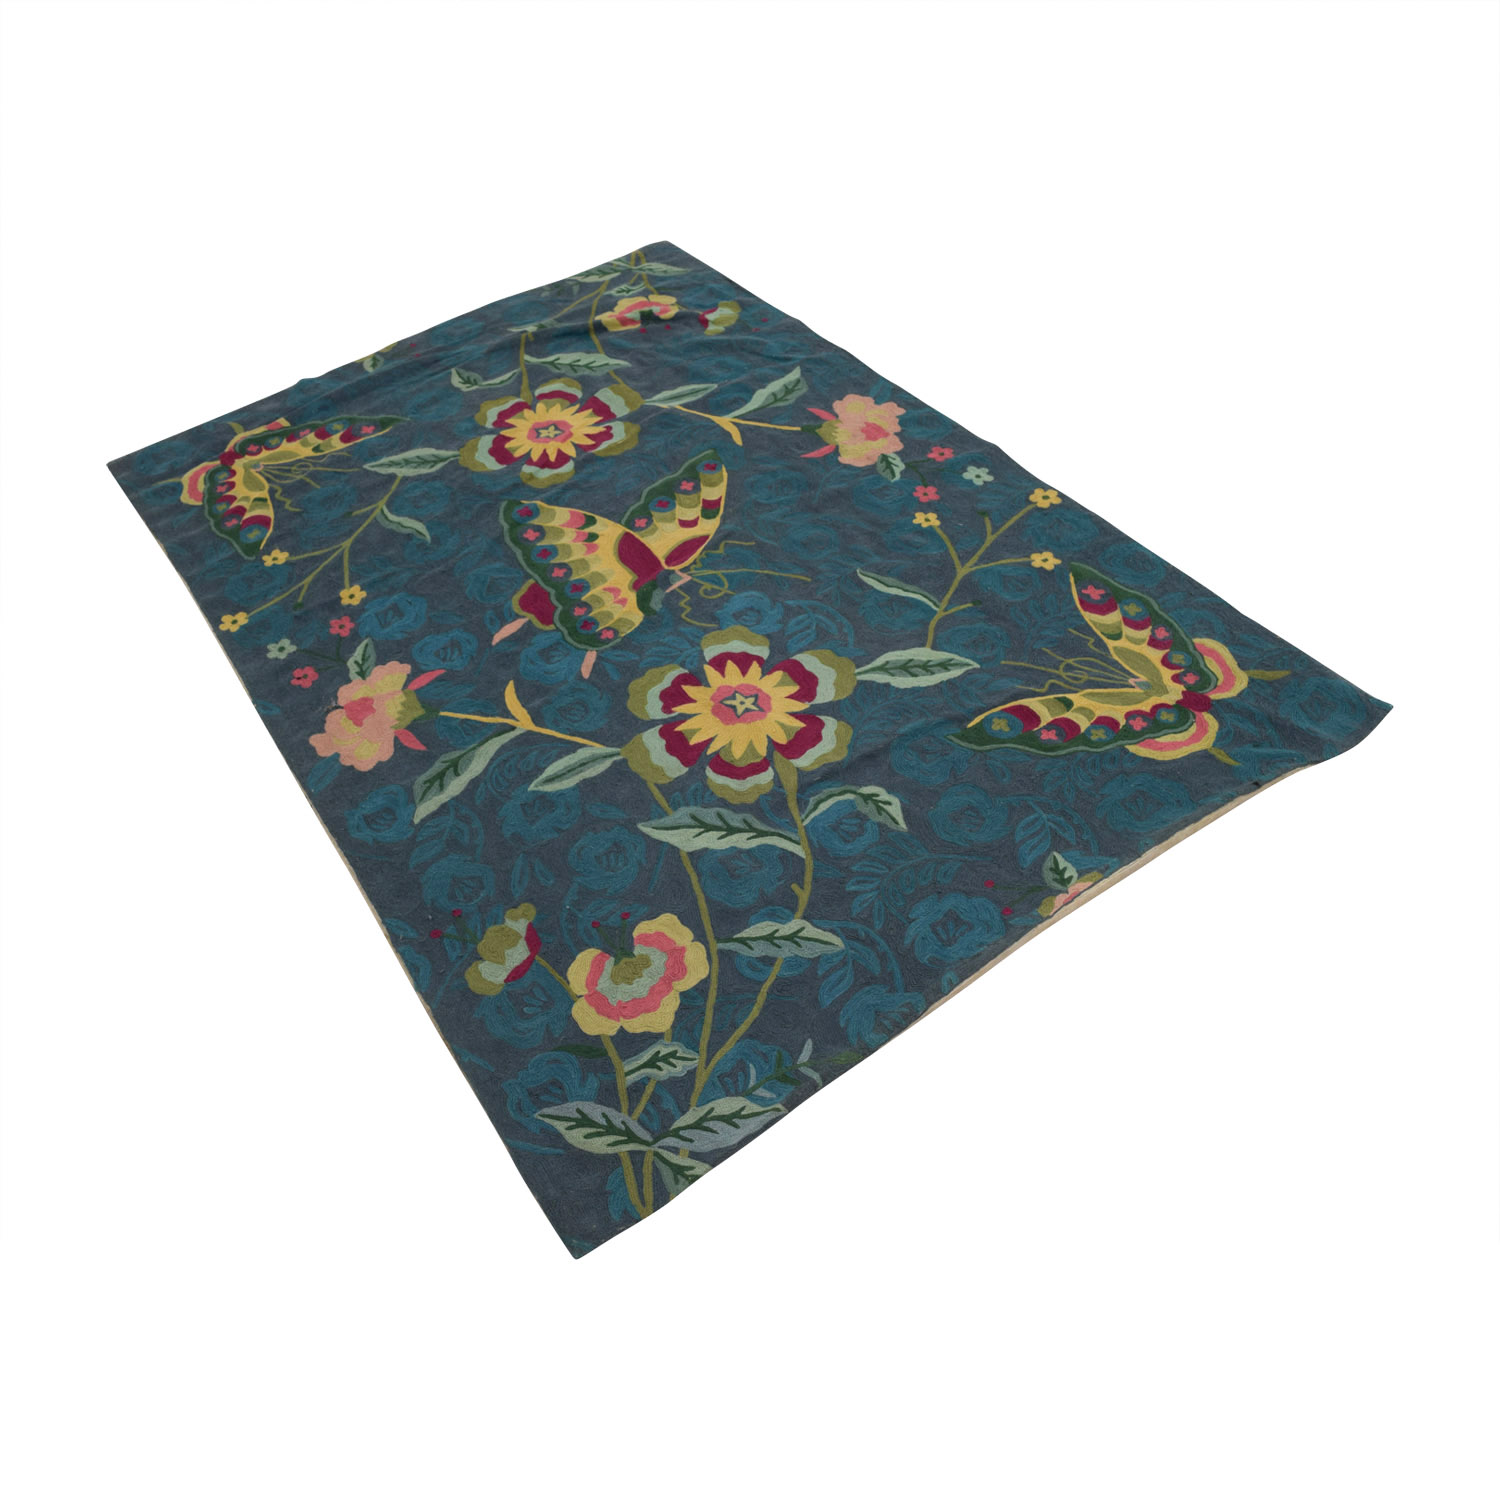 buy Anthropologie Folkloric Blue Green Floral Rug Anthropologie Rugs